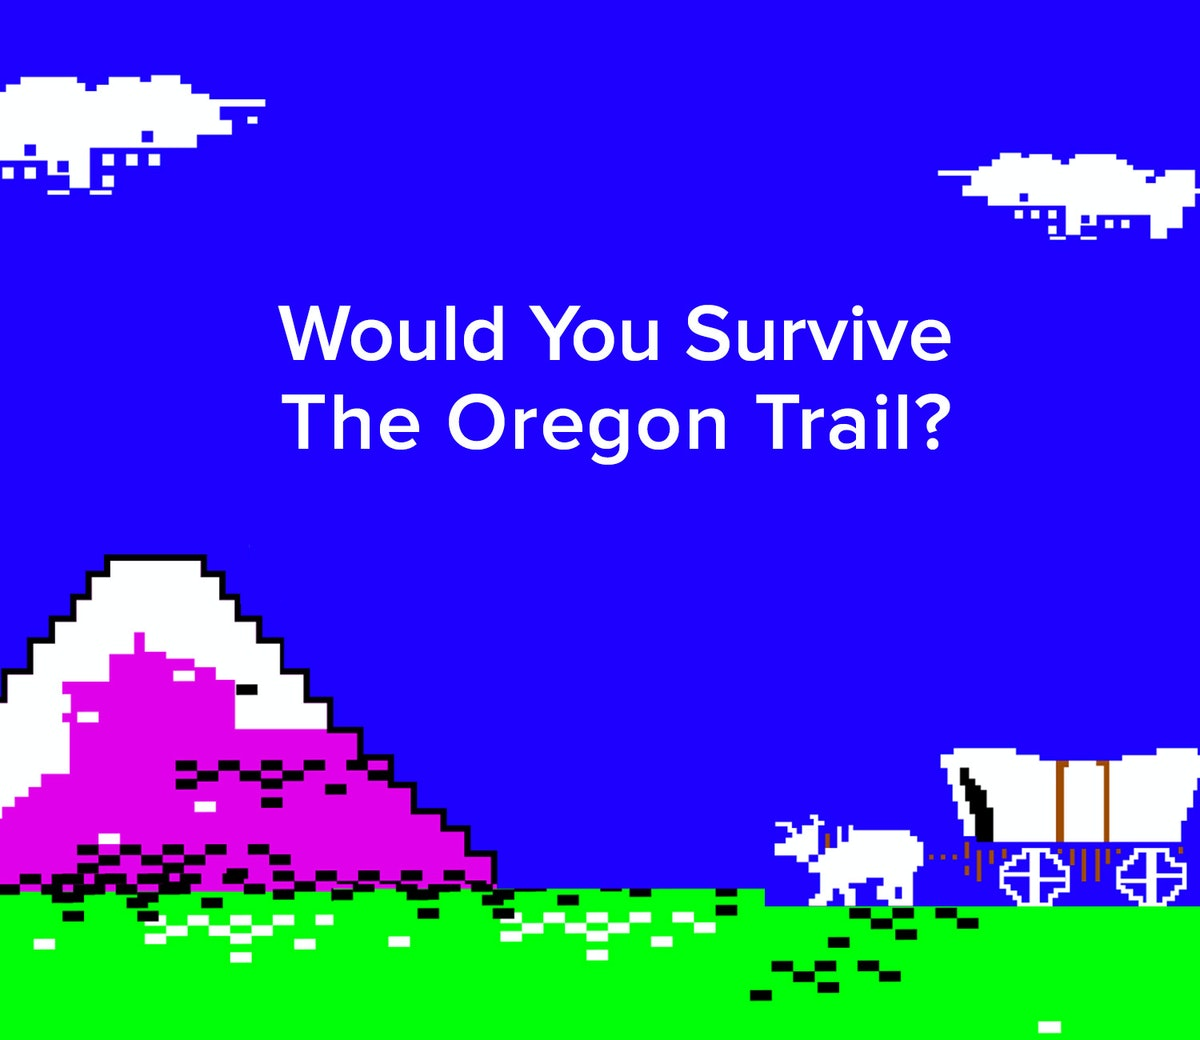 Would You Survive The Oregon Trail